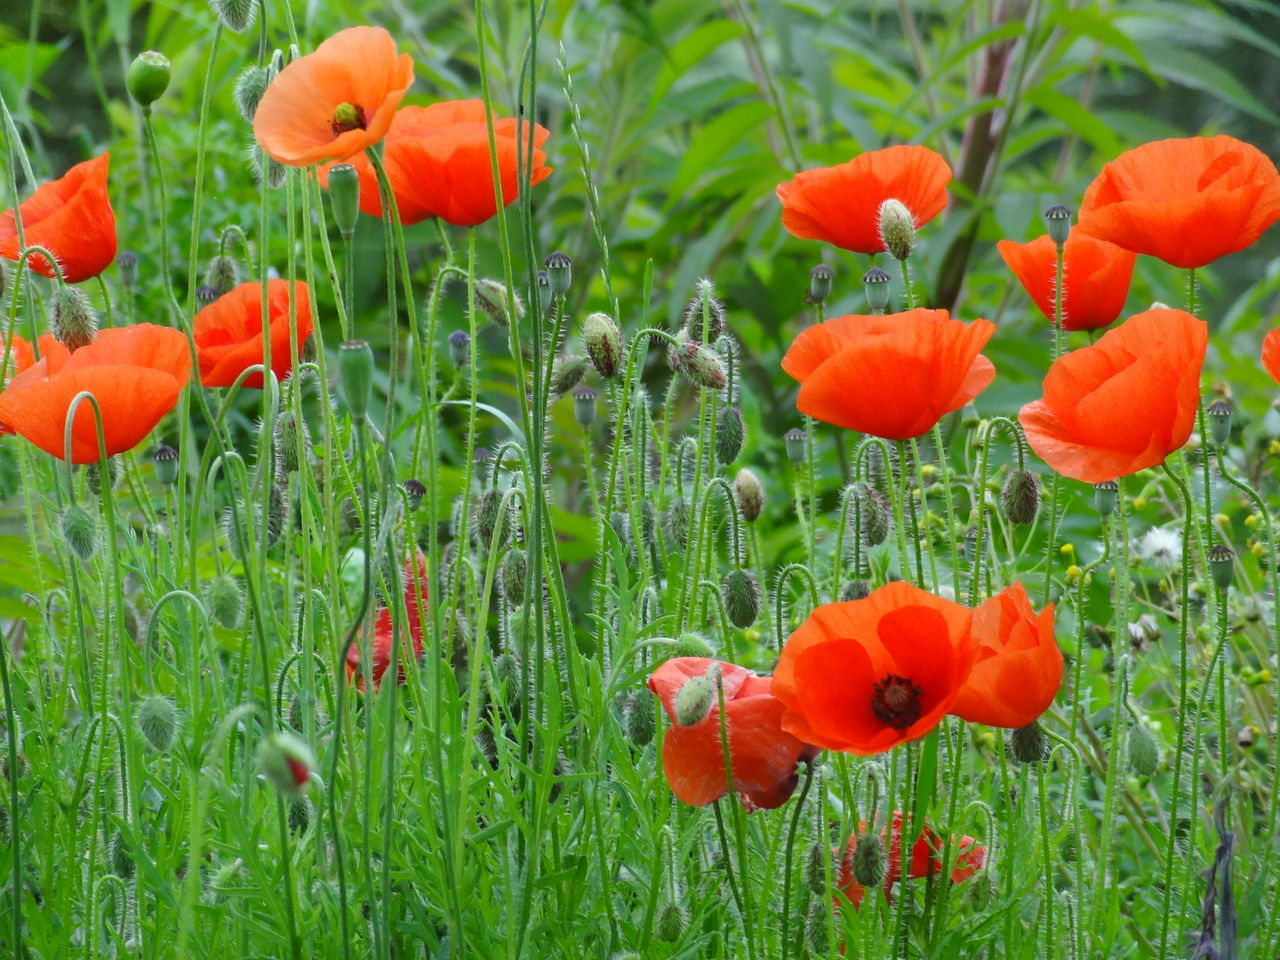 growth, flower, field, grass, plant, poppy, nature, beauty in nature, orange color, freshness, green color, fragility, petal, no people, flower head, day, outdoors, blooming, tranquility, red, rural scene, close-up